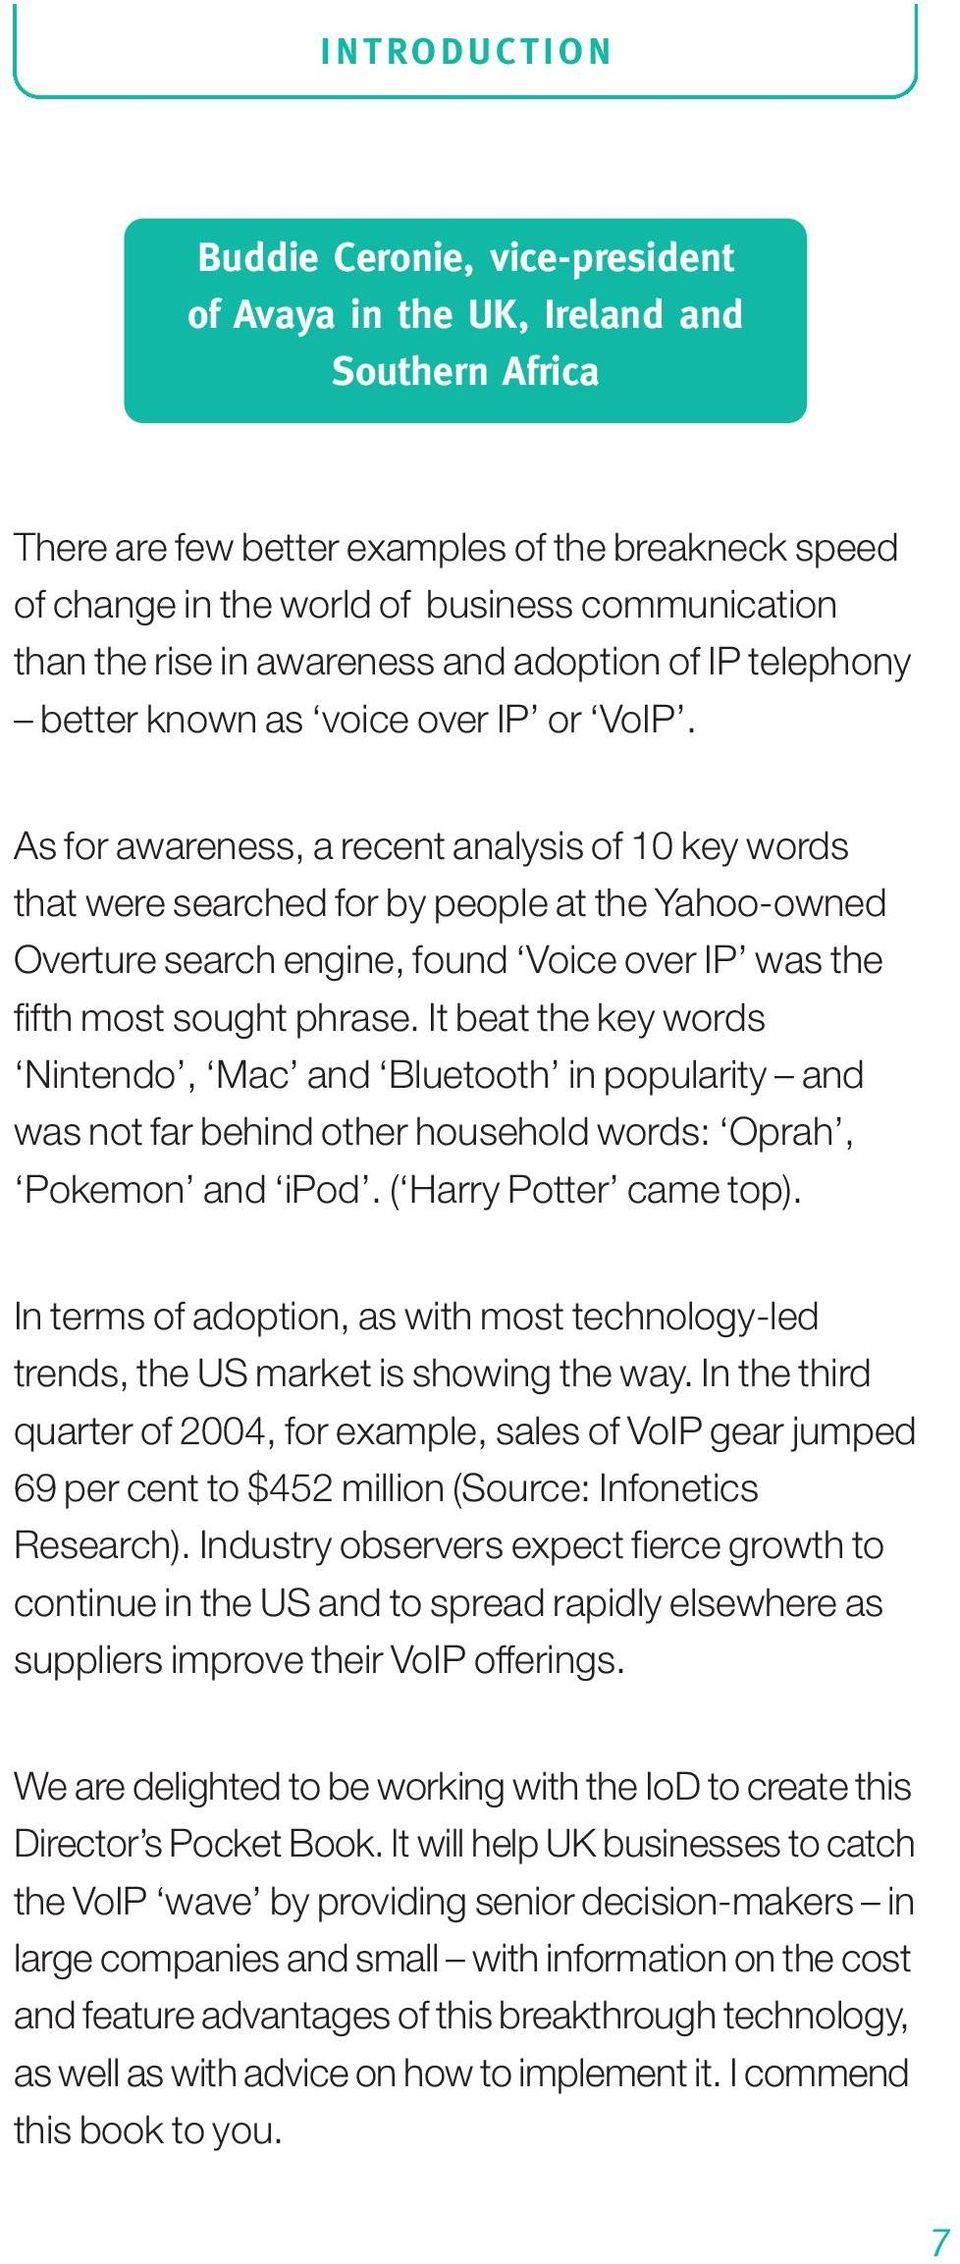 As for awareness, a recent analysis of 10 key words that were searched for by people at the Yahoo-owned Overture search engine, found Voice over IP was the fifth most sought phrase.